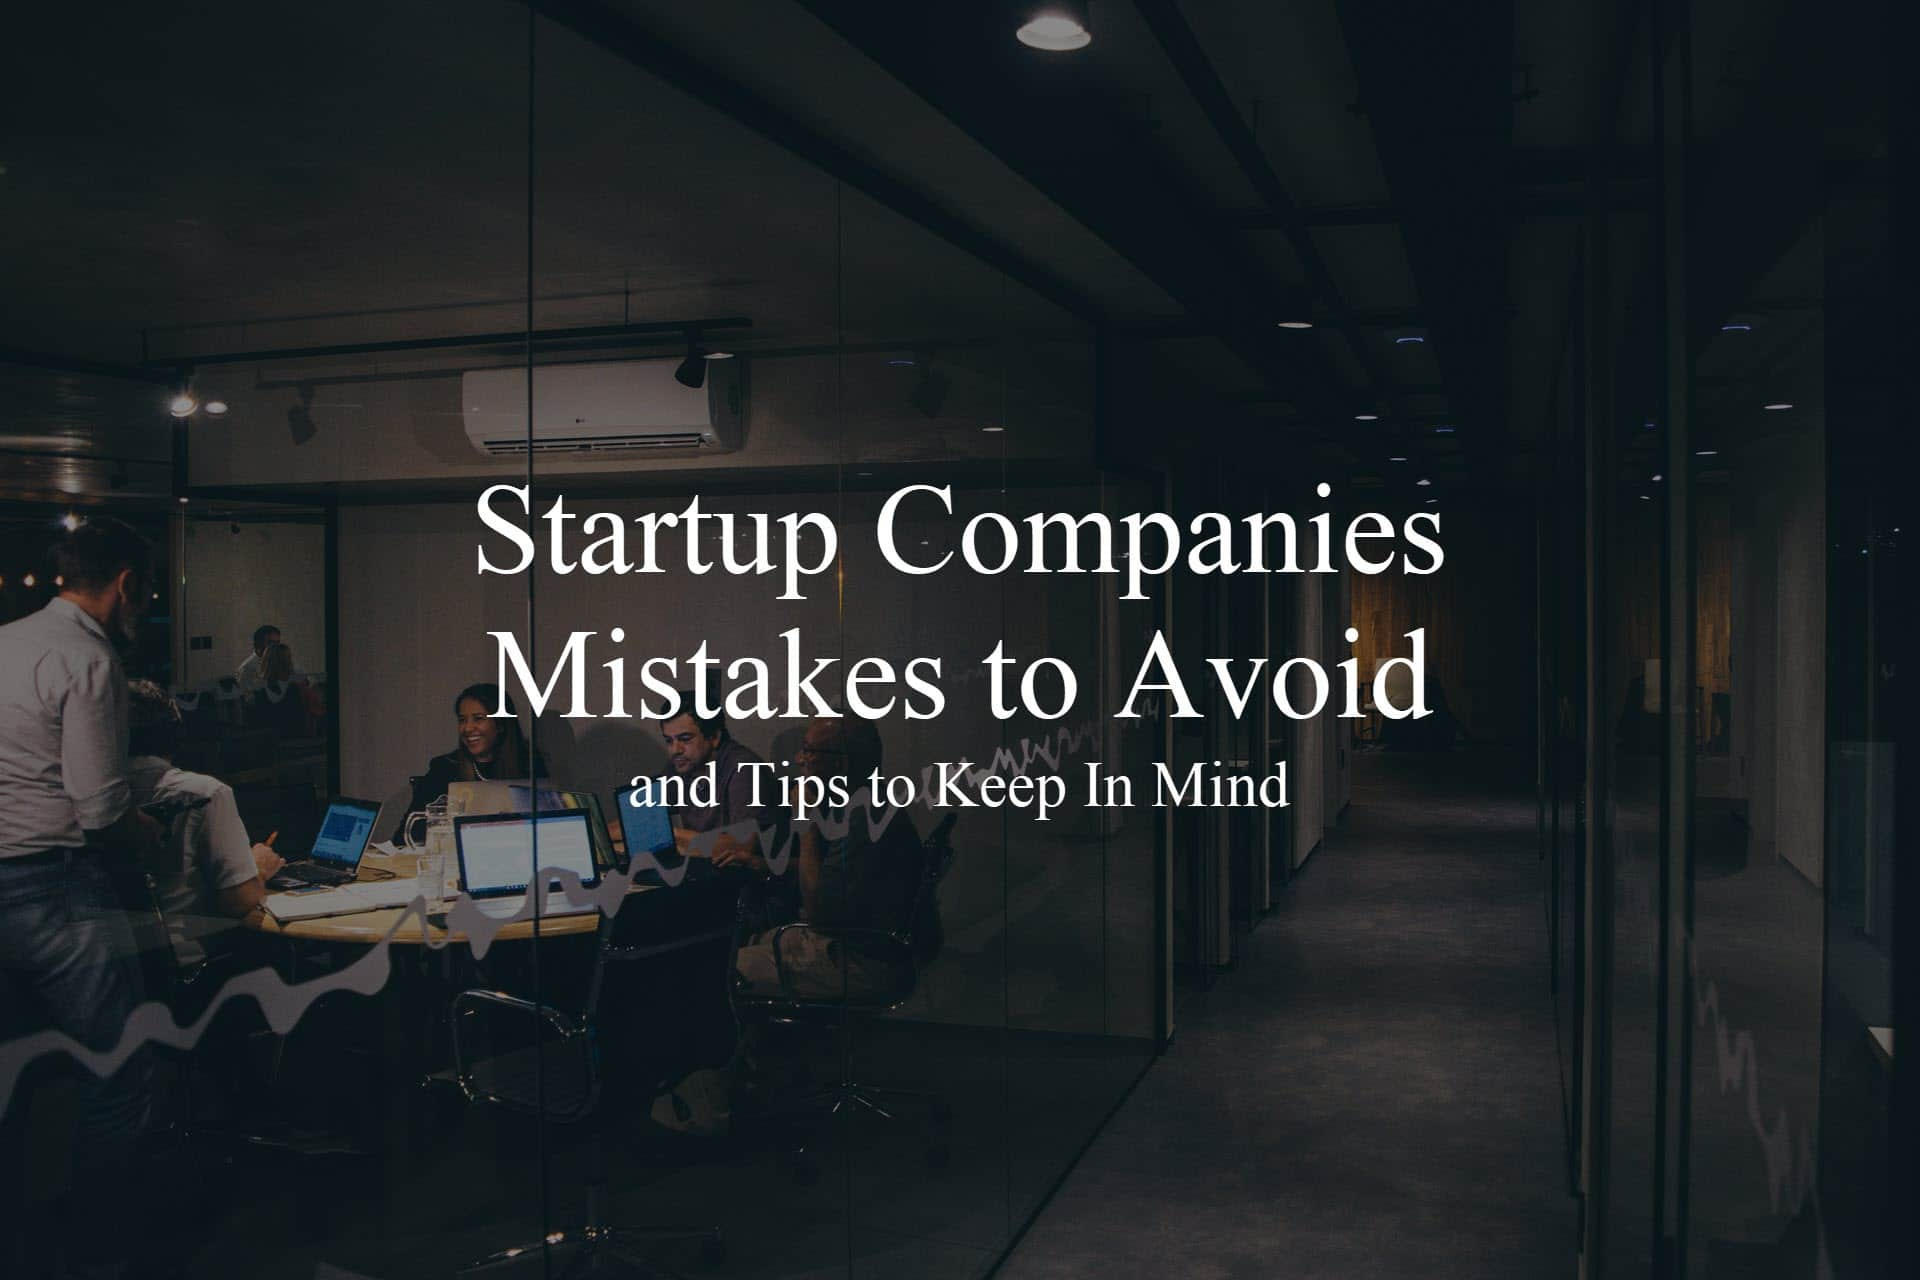 Startup Companies Mistakes to Avoid and Tips to Keep In Mind